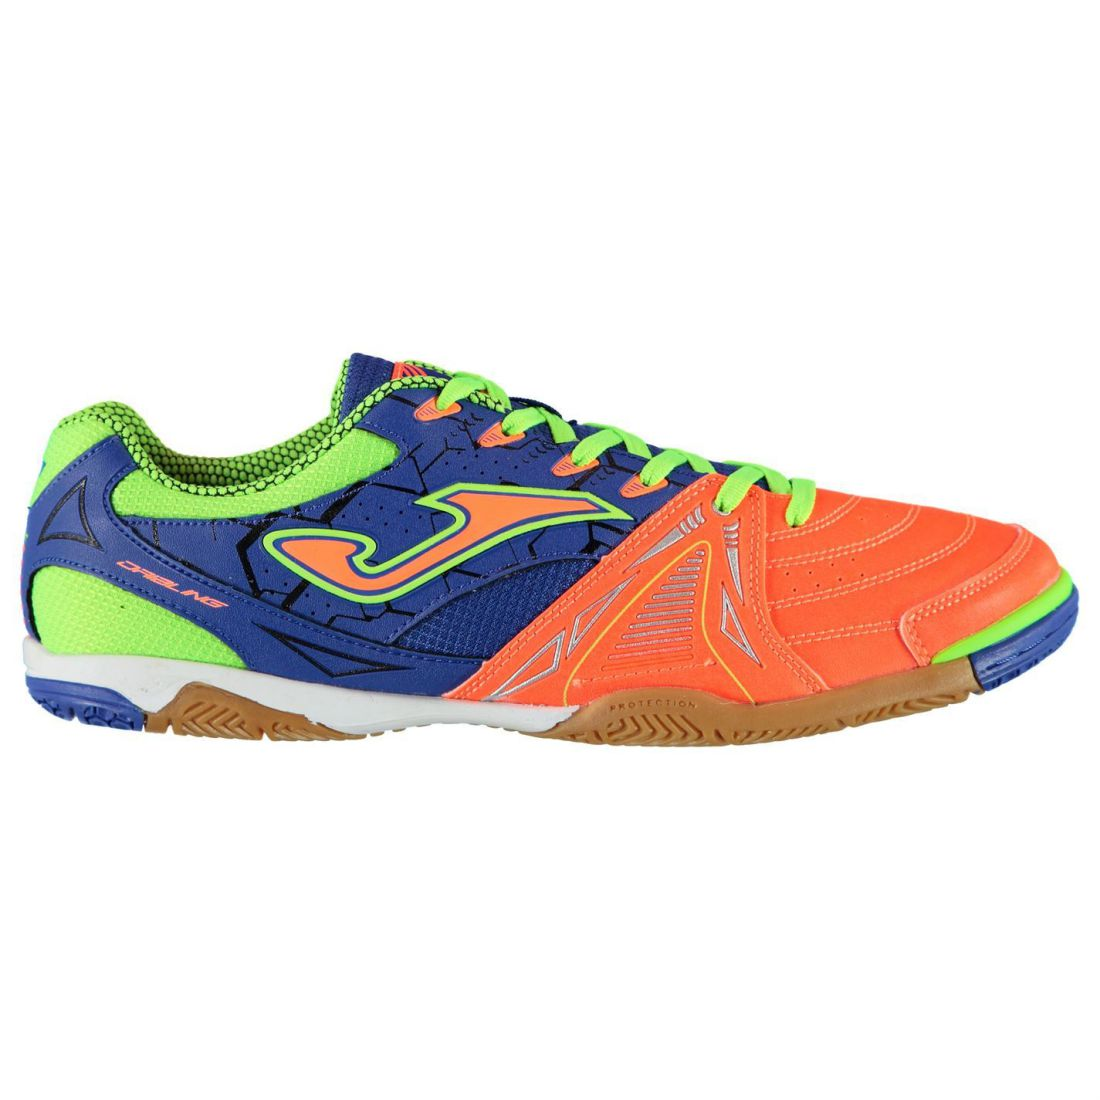 5f0f1d5516 Details about Joma Men Dribling Indoor Court Trainers Sneakers Football  Boots Shoes Lace Up